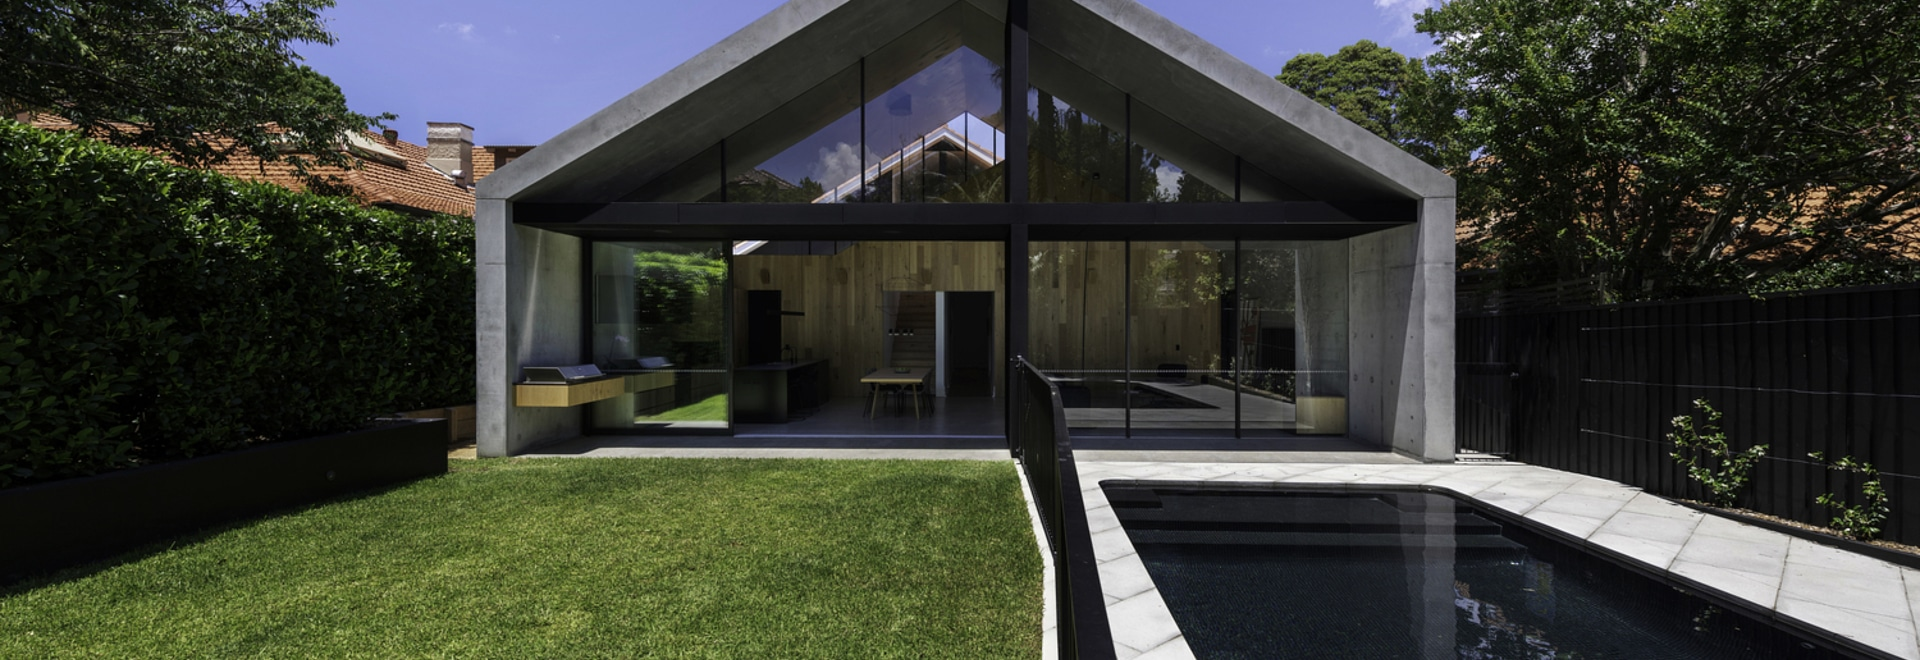 A Contemporary Concrete Extension Provided More Living Space For This Home